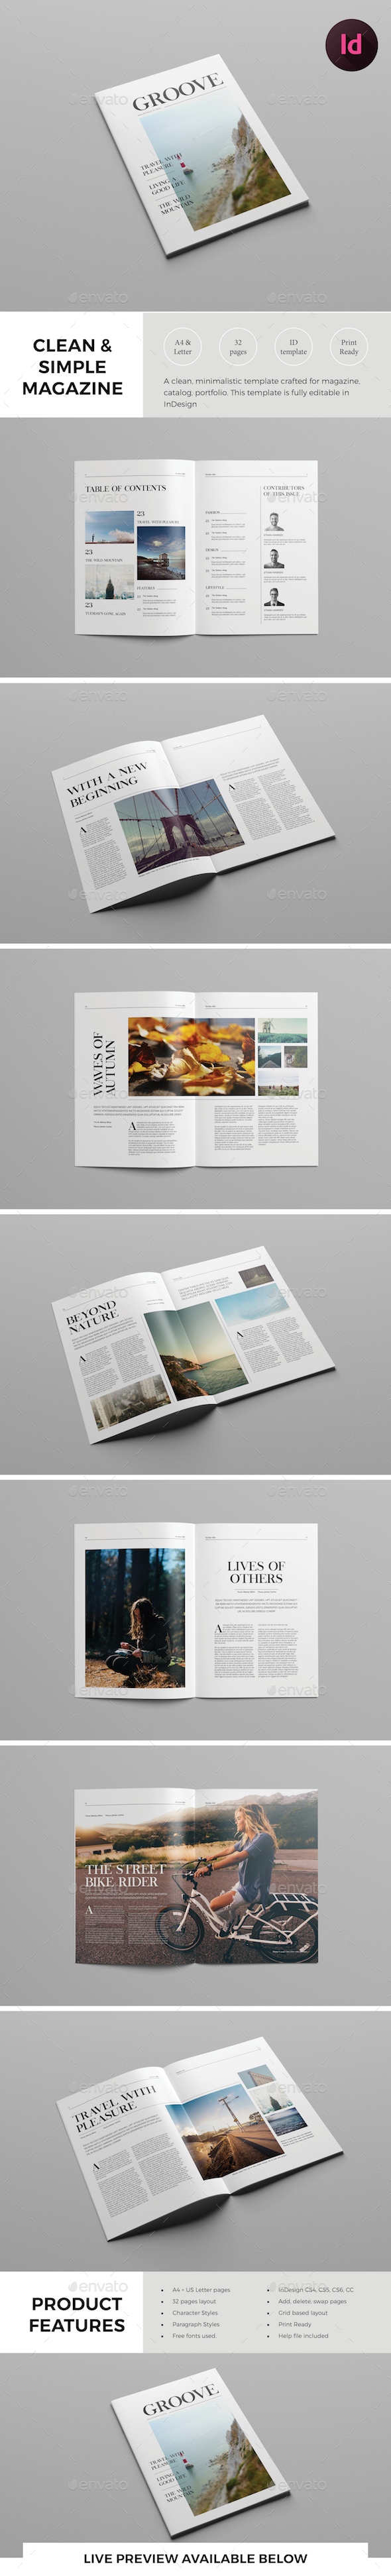 Clean Lifestyle Magazine Template - Magazines Print Templates